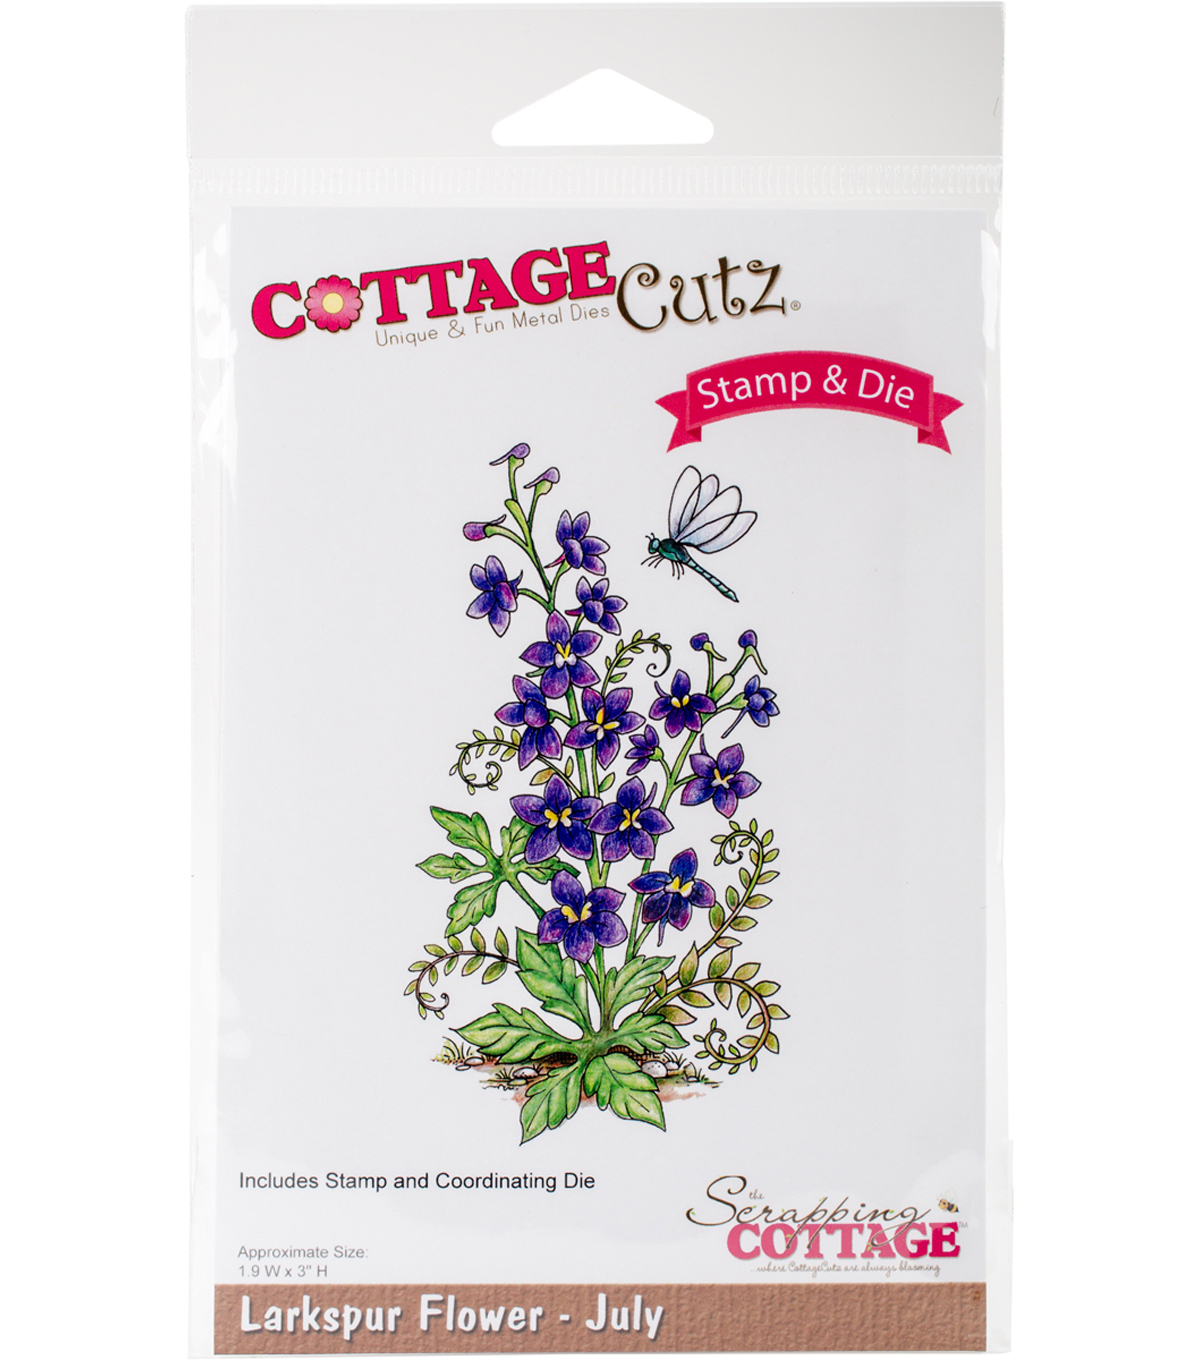 CottageCutz Stamp & Die Set-Larkspur-July